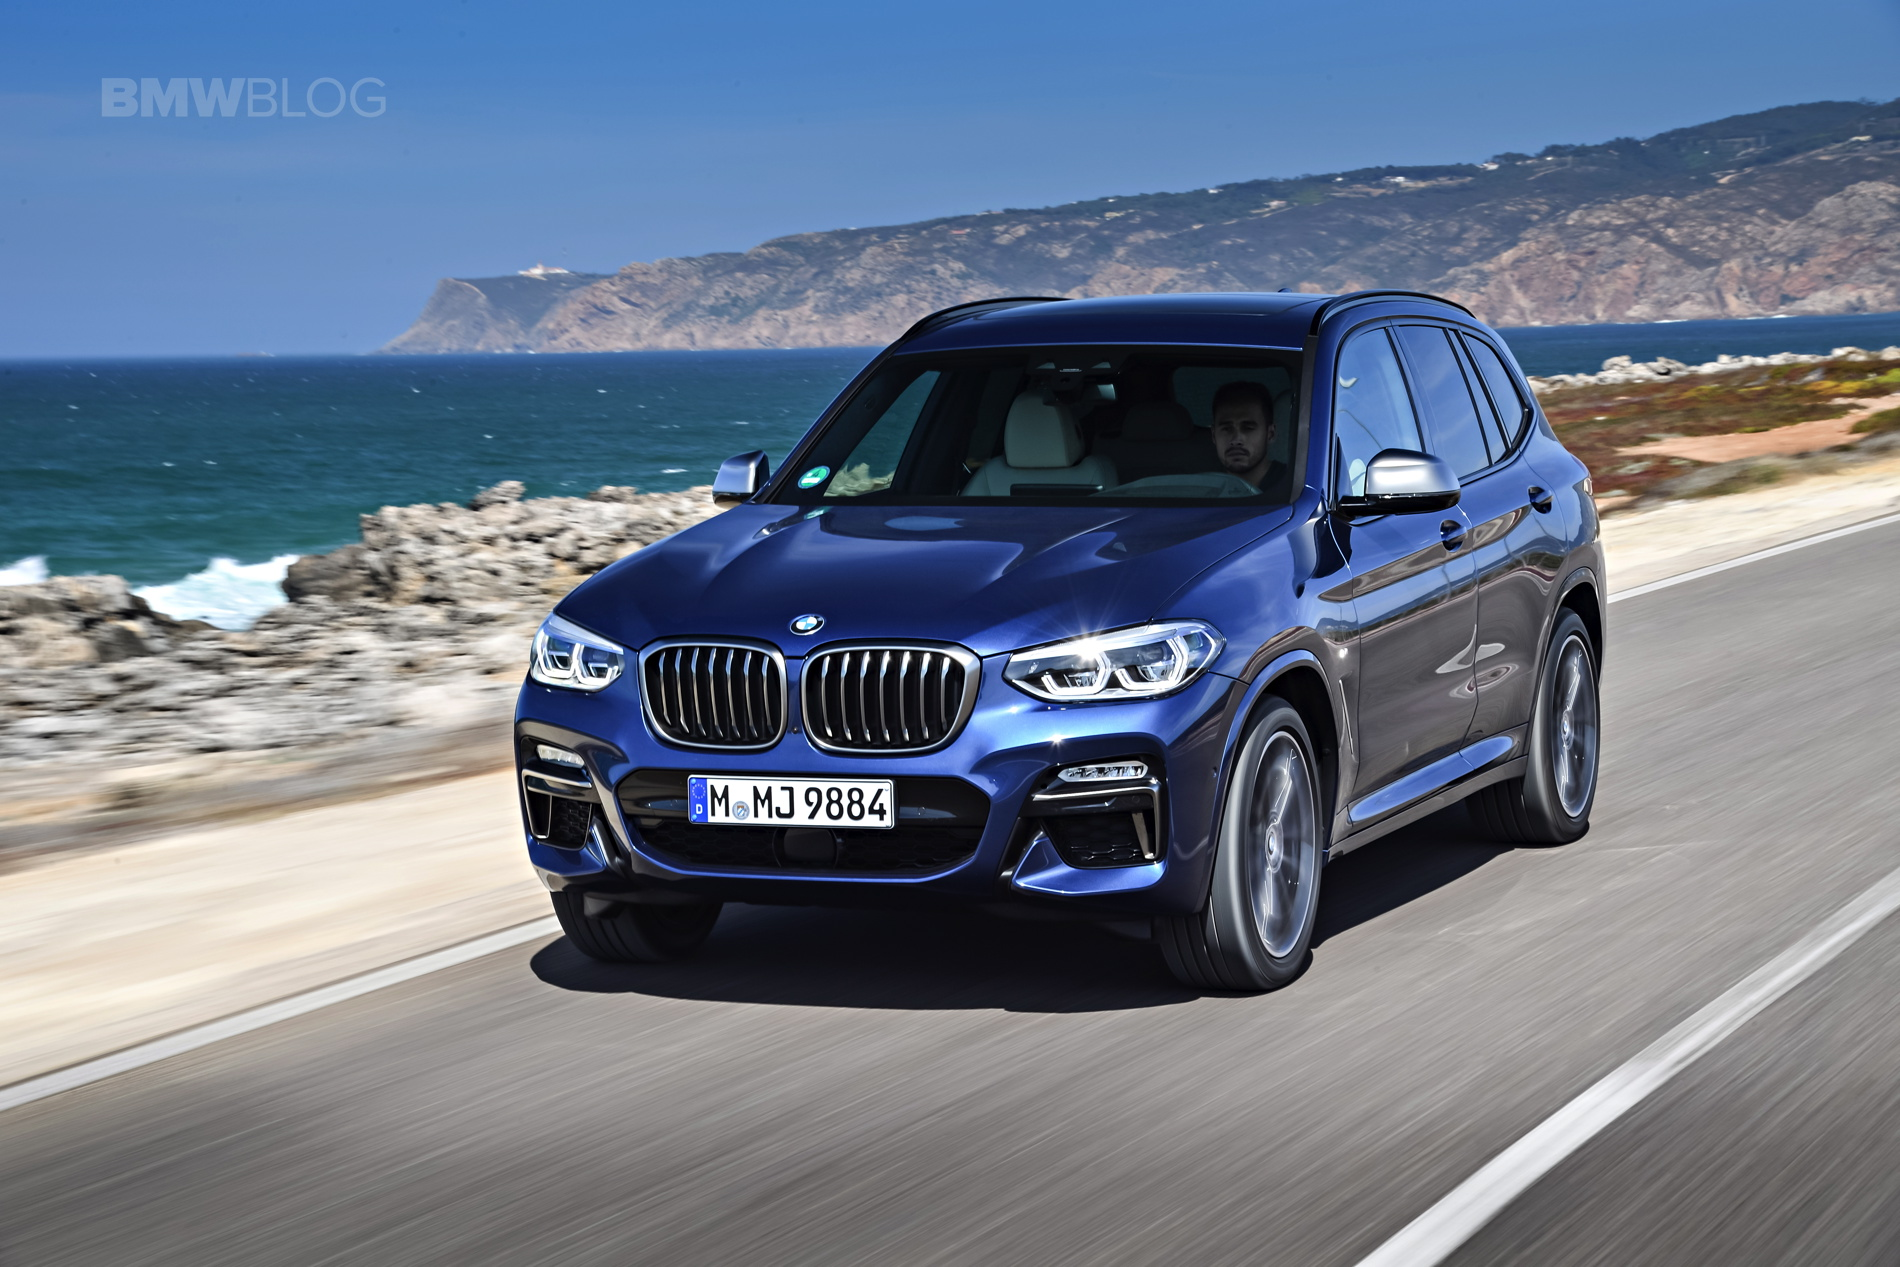 2018 BMW X3 M40i photoshoot 78